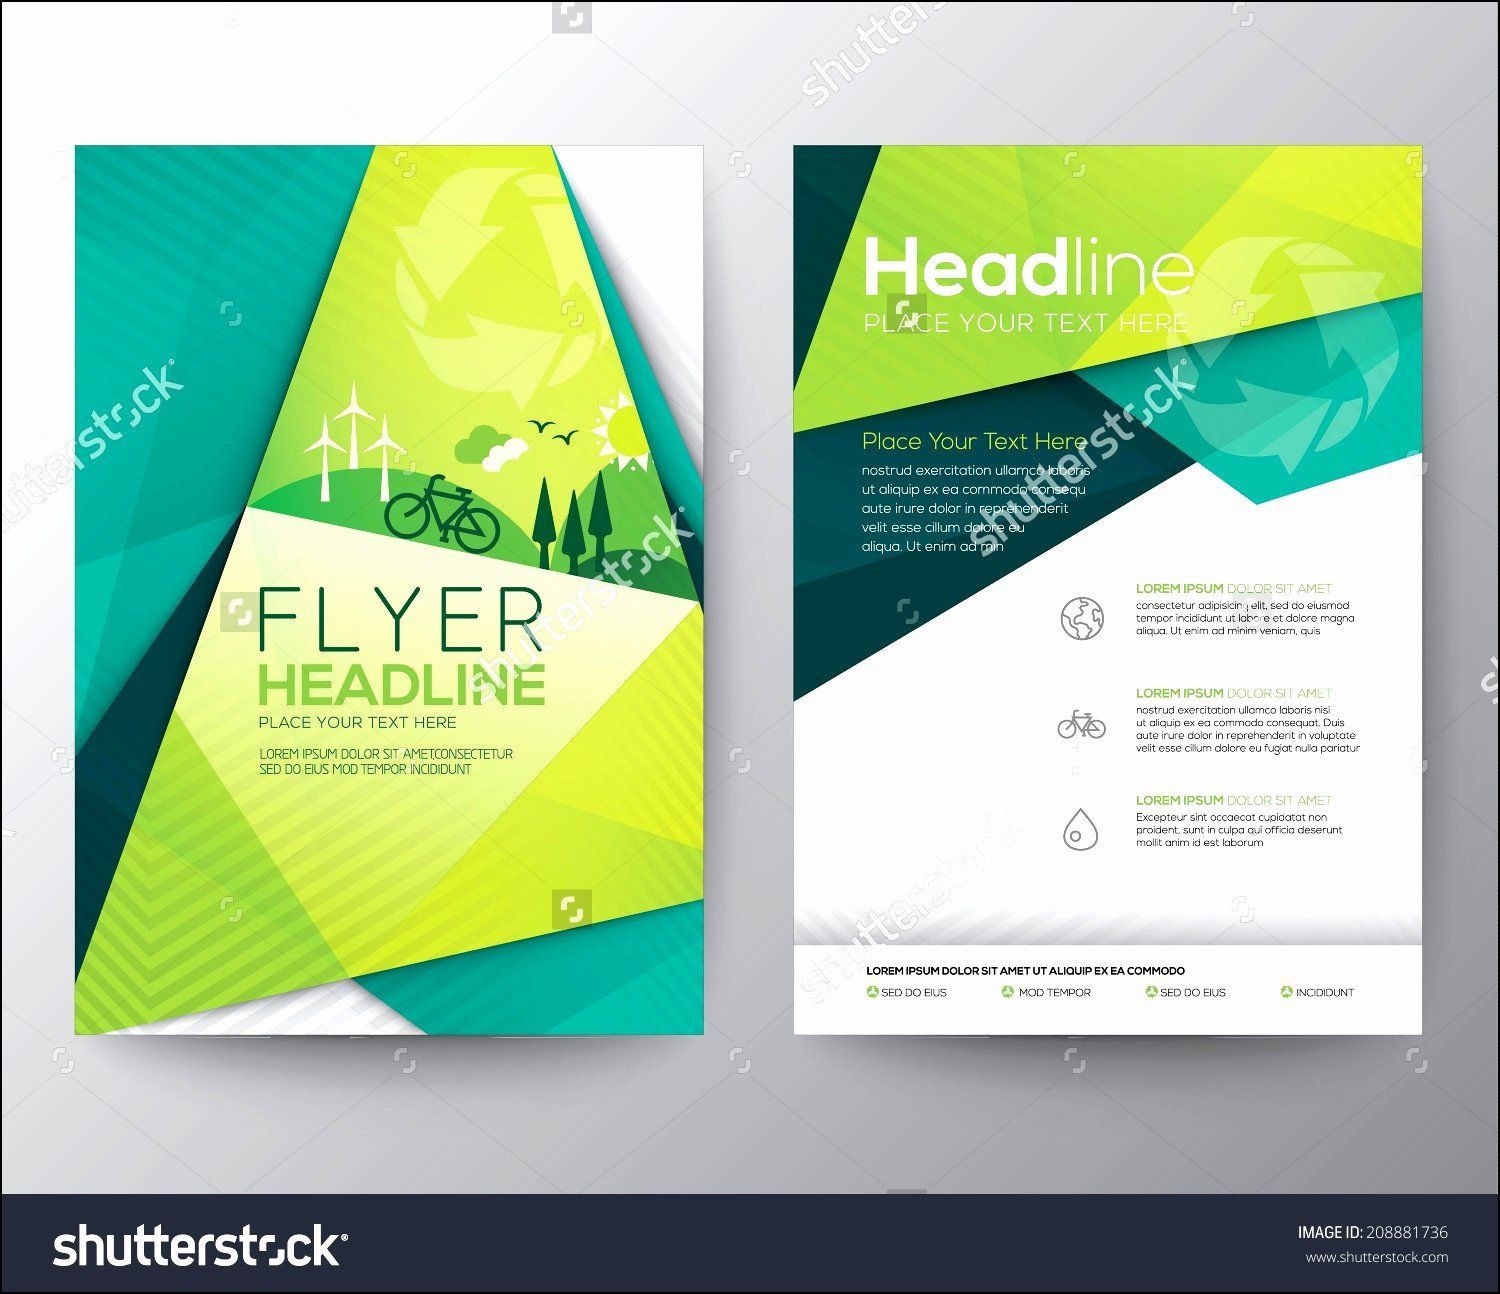 000 Exceptional Brochure Design Template Psd Free Download Picture  HotelFull